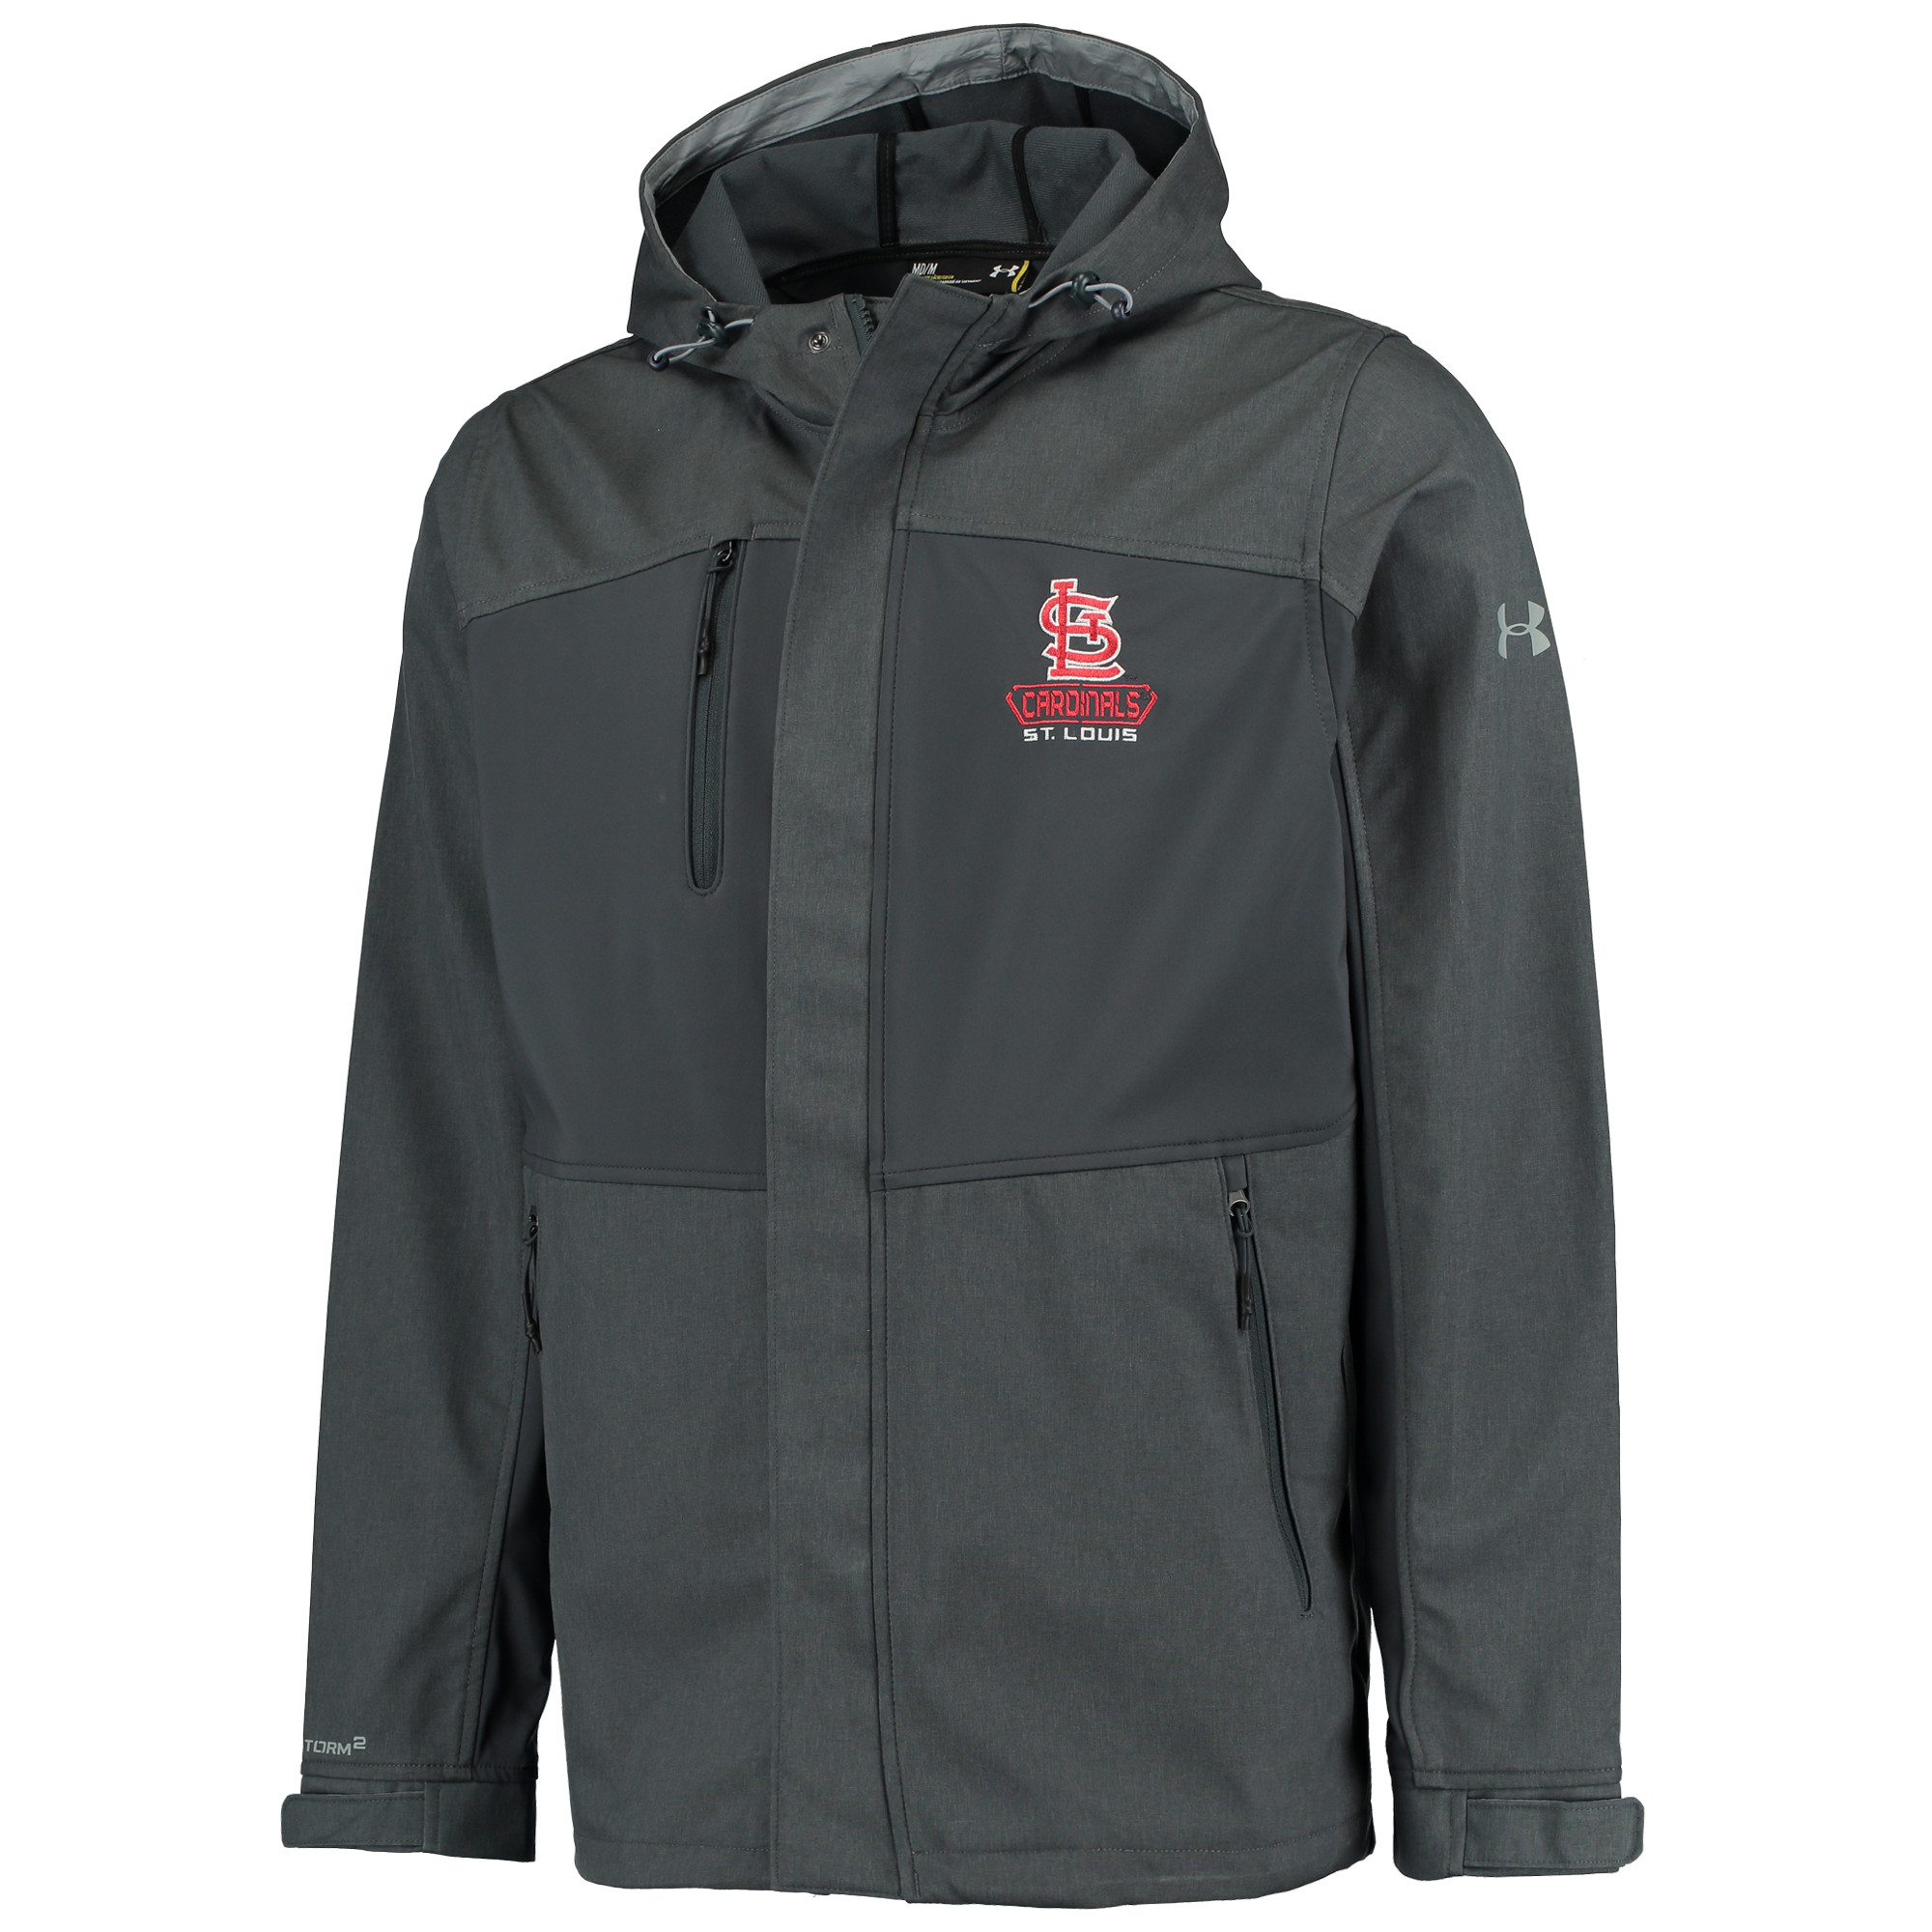 St. Louis Cardinals Under Armour Mix Softshell Performance Hooded Jacket - Charcoal